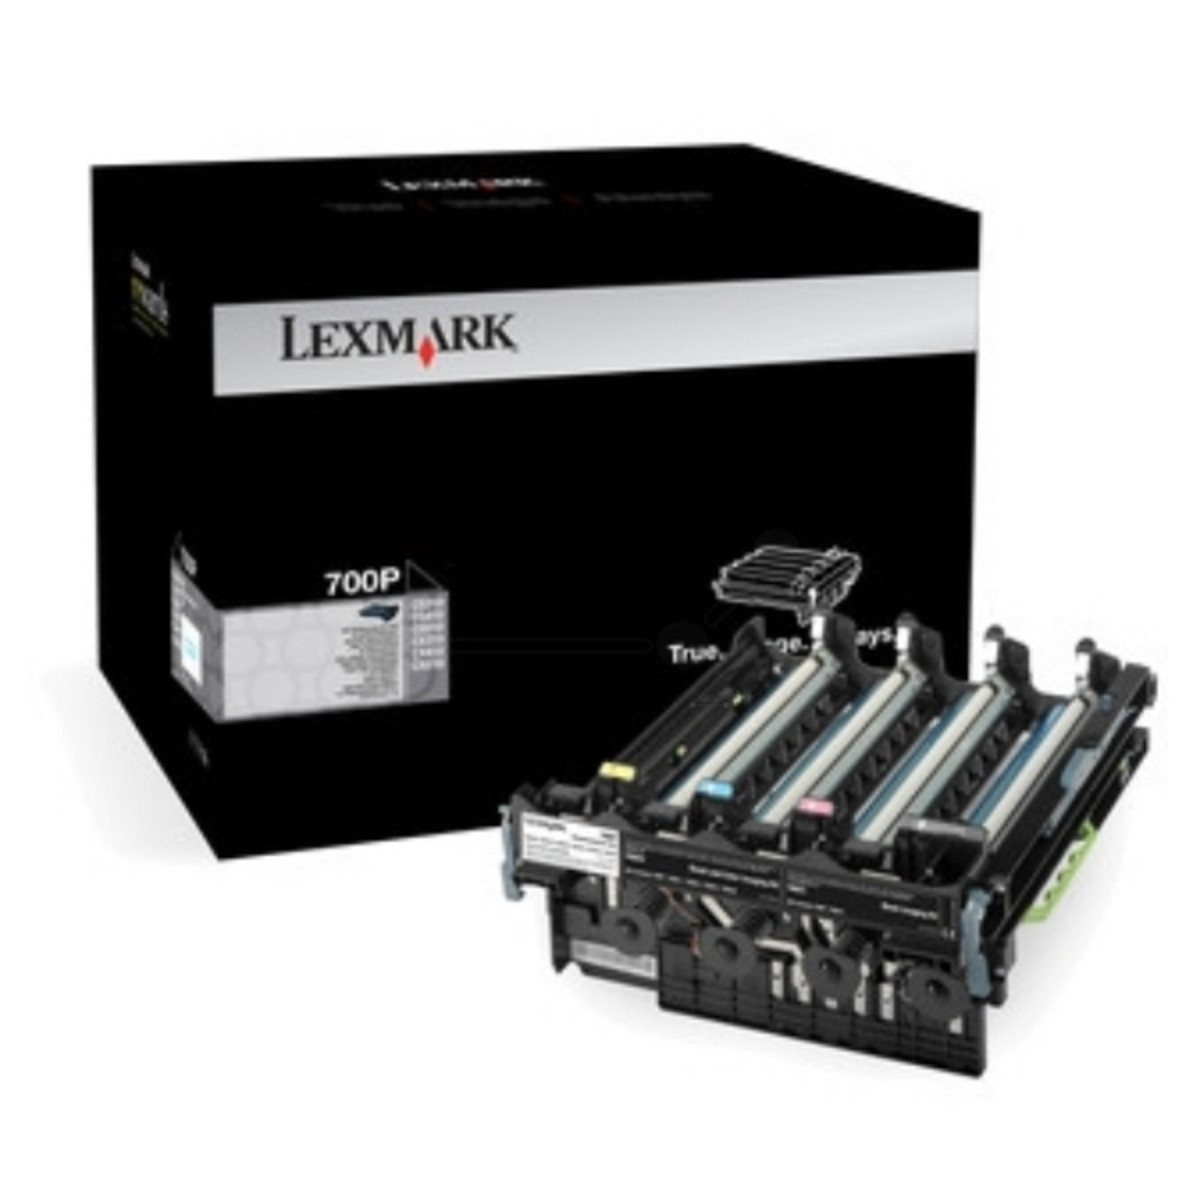 Lexmark No. 700P Photoconductor Unit